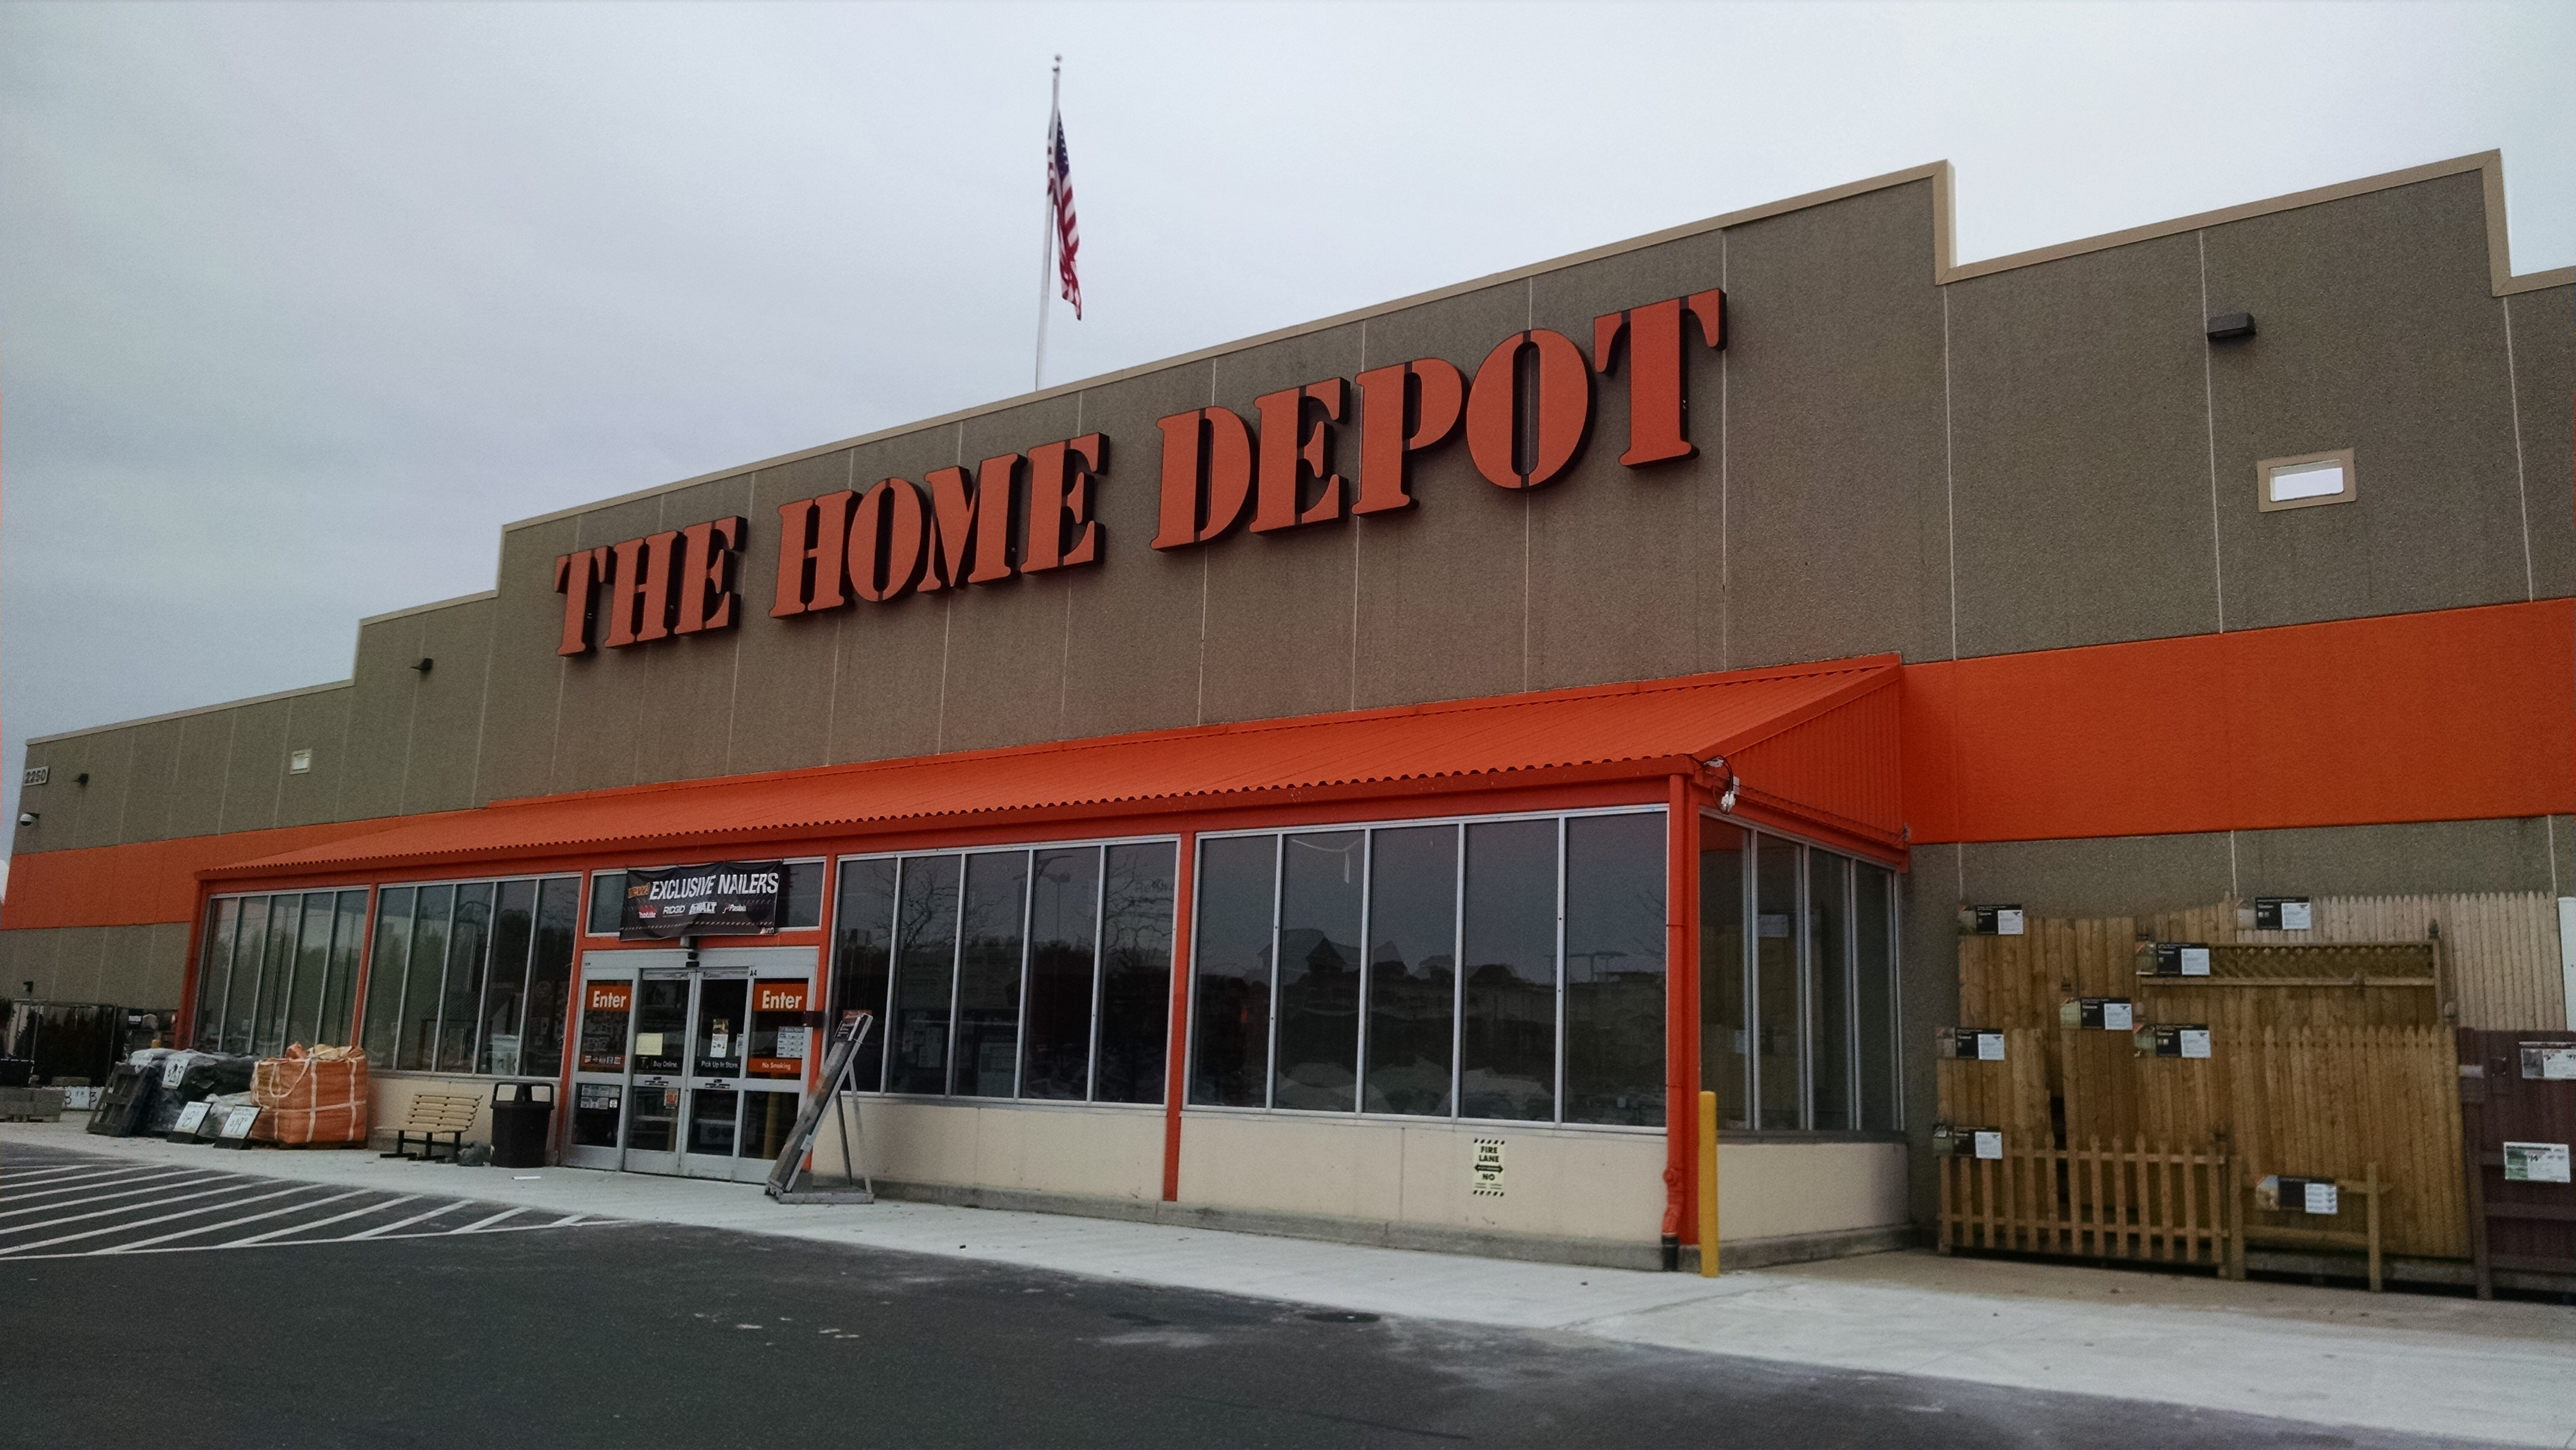 Home Depot Discount The Home Depot Coupons Willow Grove Pa Near Me 8coupons